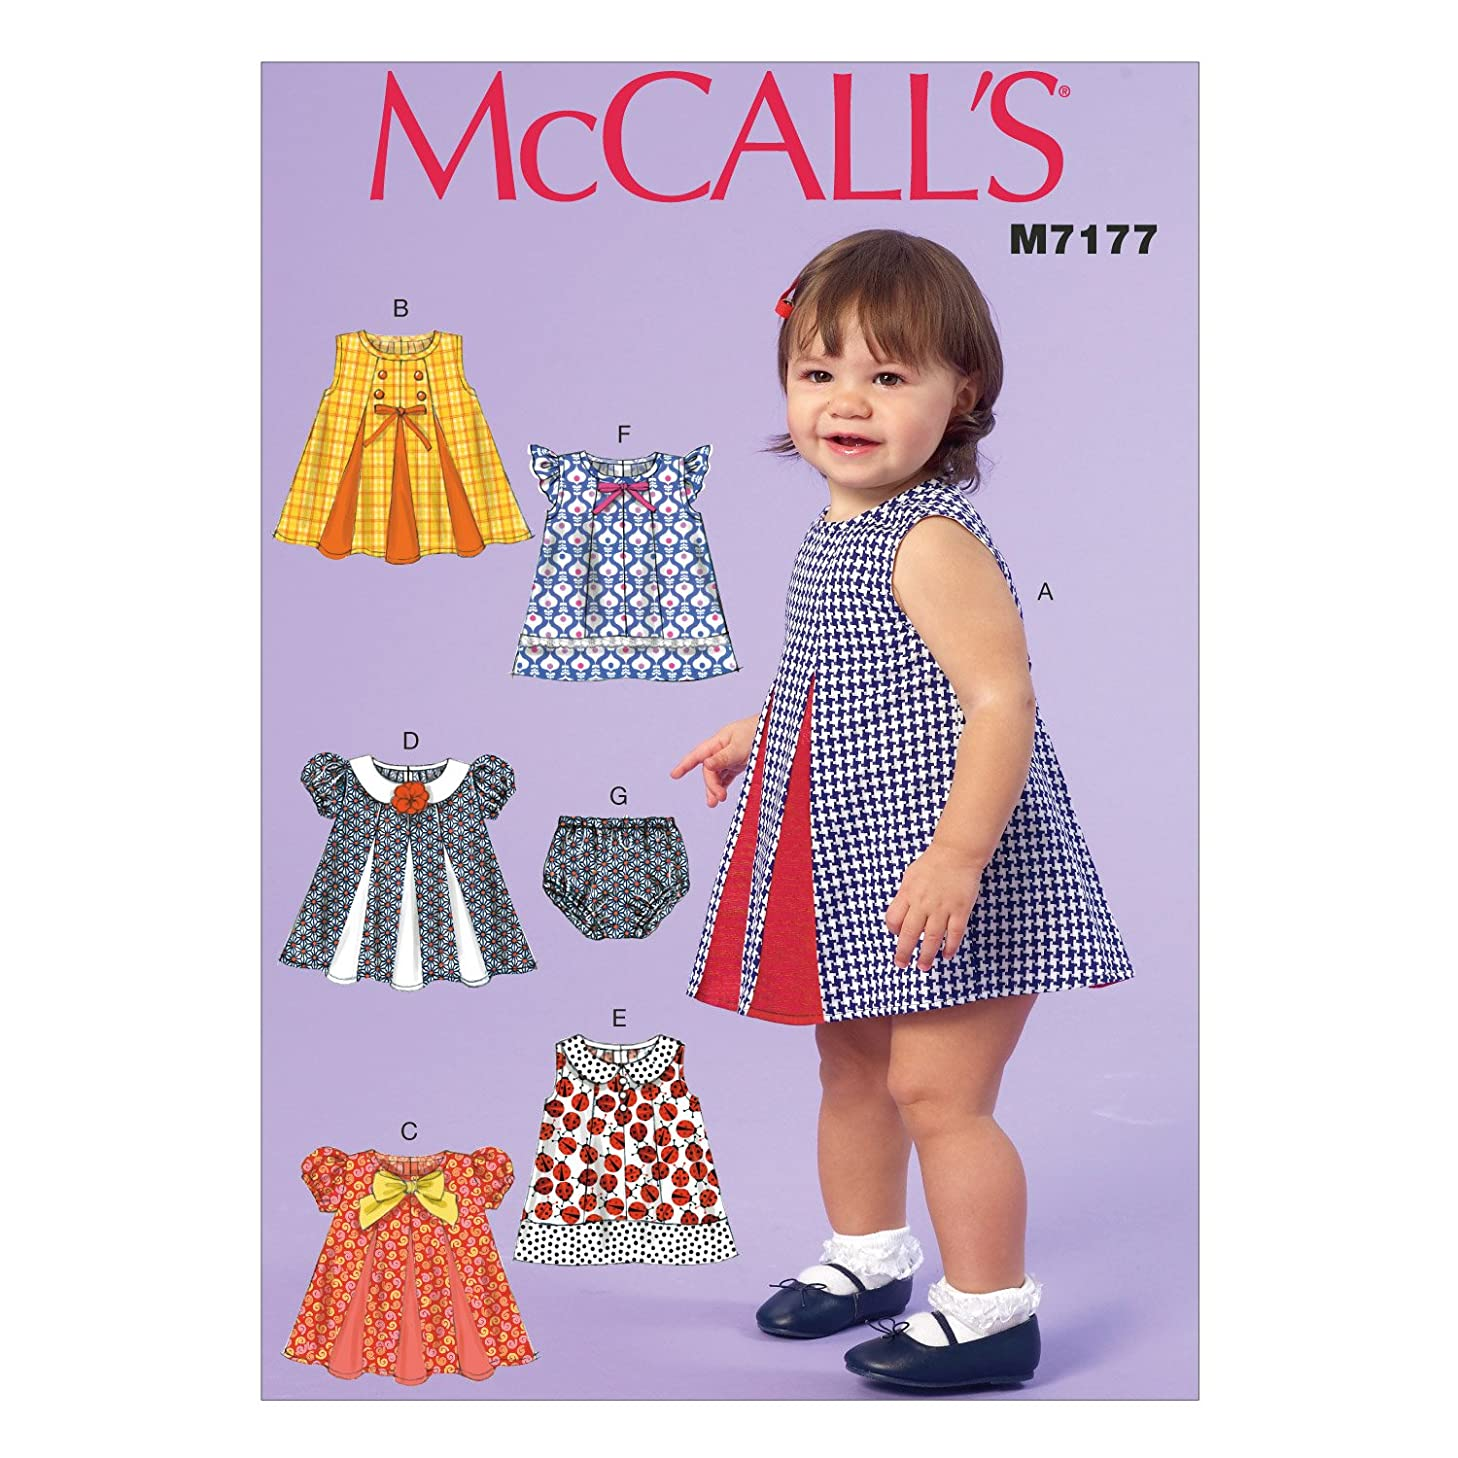 McCall's Patterns M7177 Infants' Dresses and Panties Sewing Template, YA5 in One Envelope